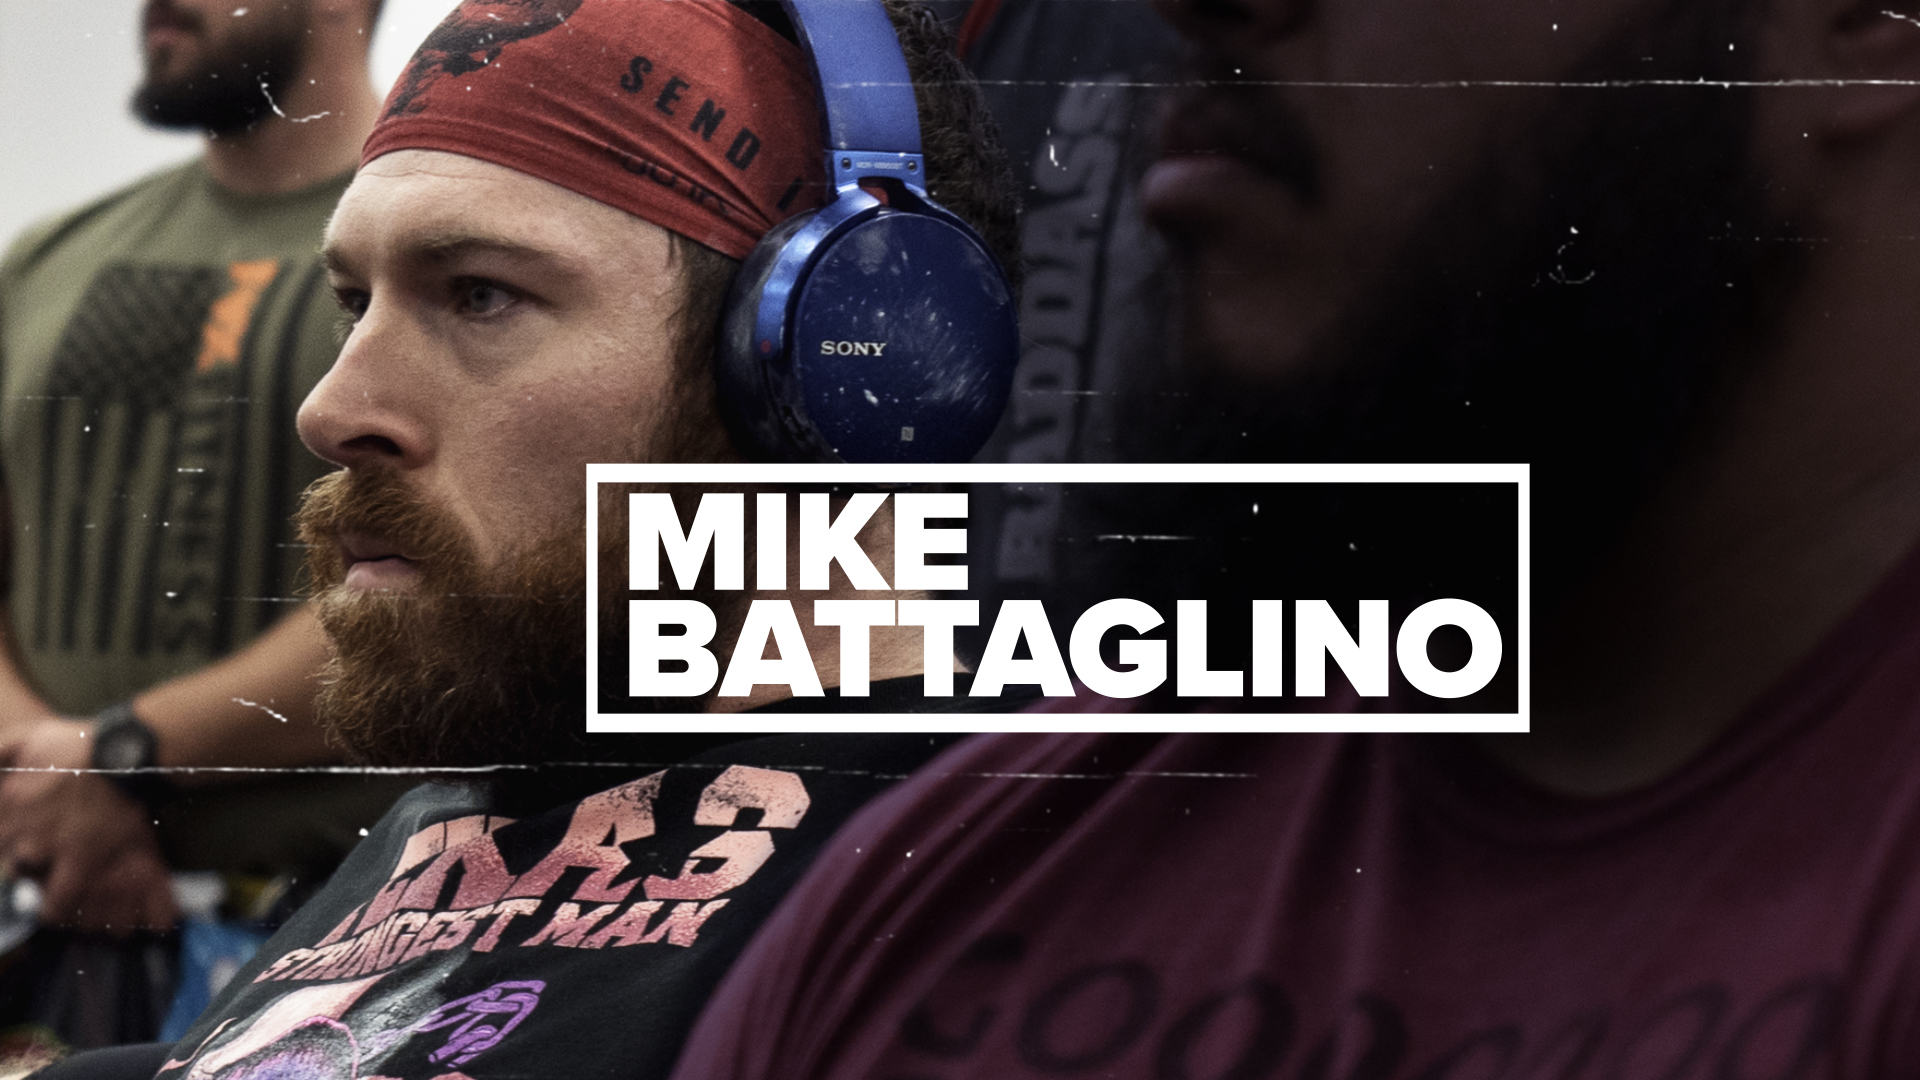 This documentary follows Mike Battaglino behind the scenes as he competes to defend his title as Texas Strongest Man in the Middle Weight division.